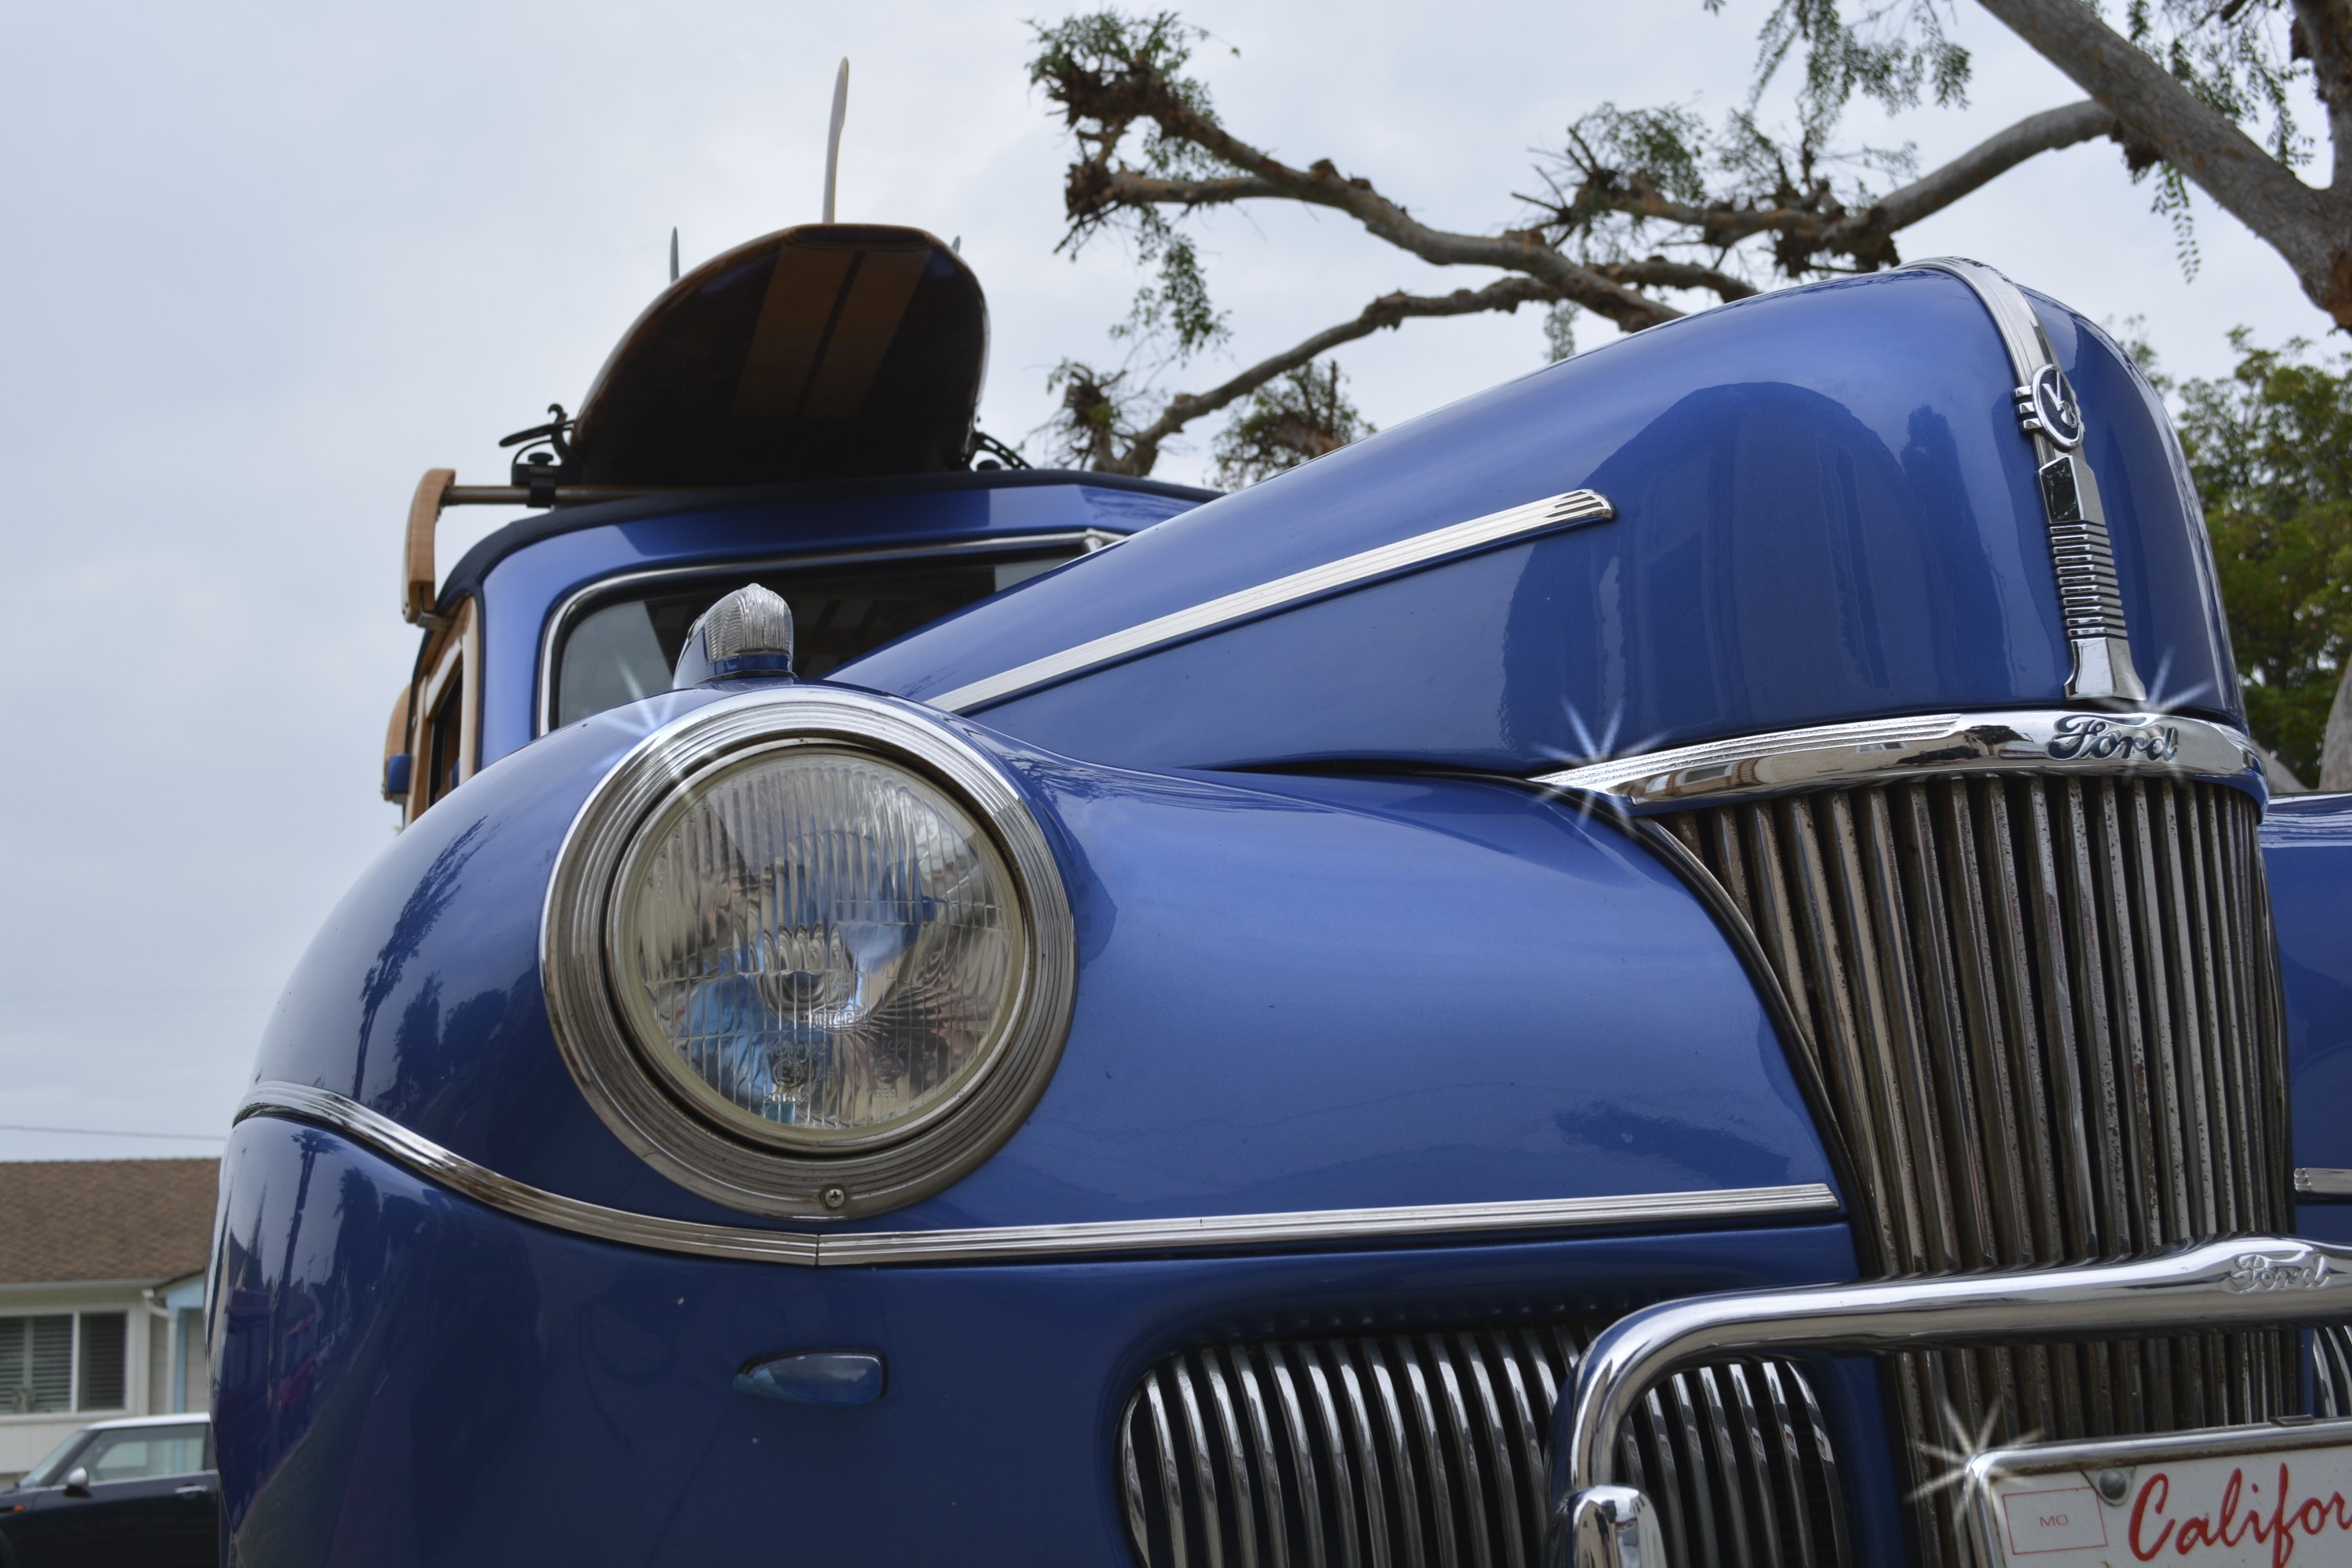 low-angle photo of classic blue vehicle during daytime